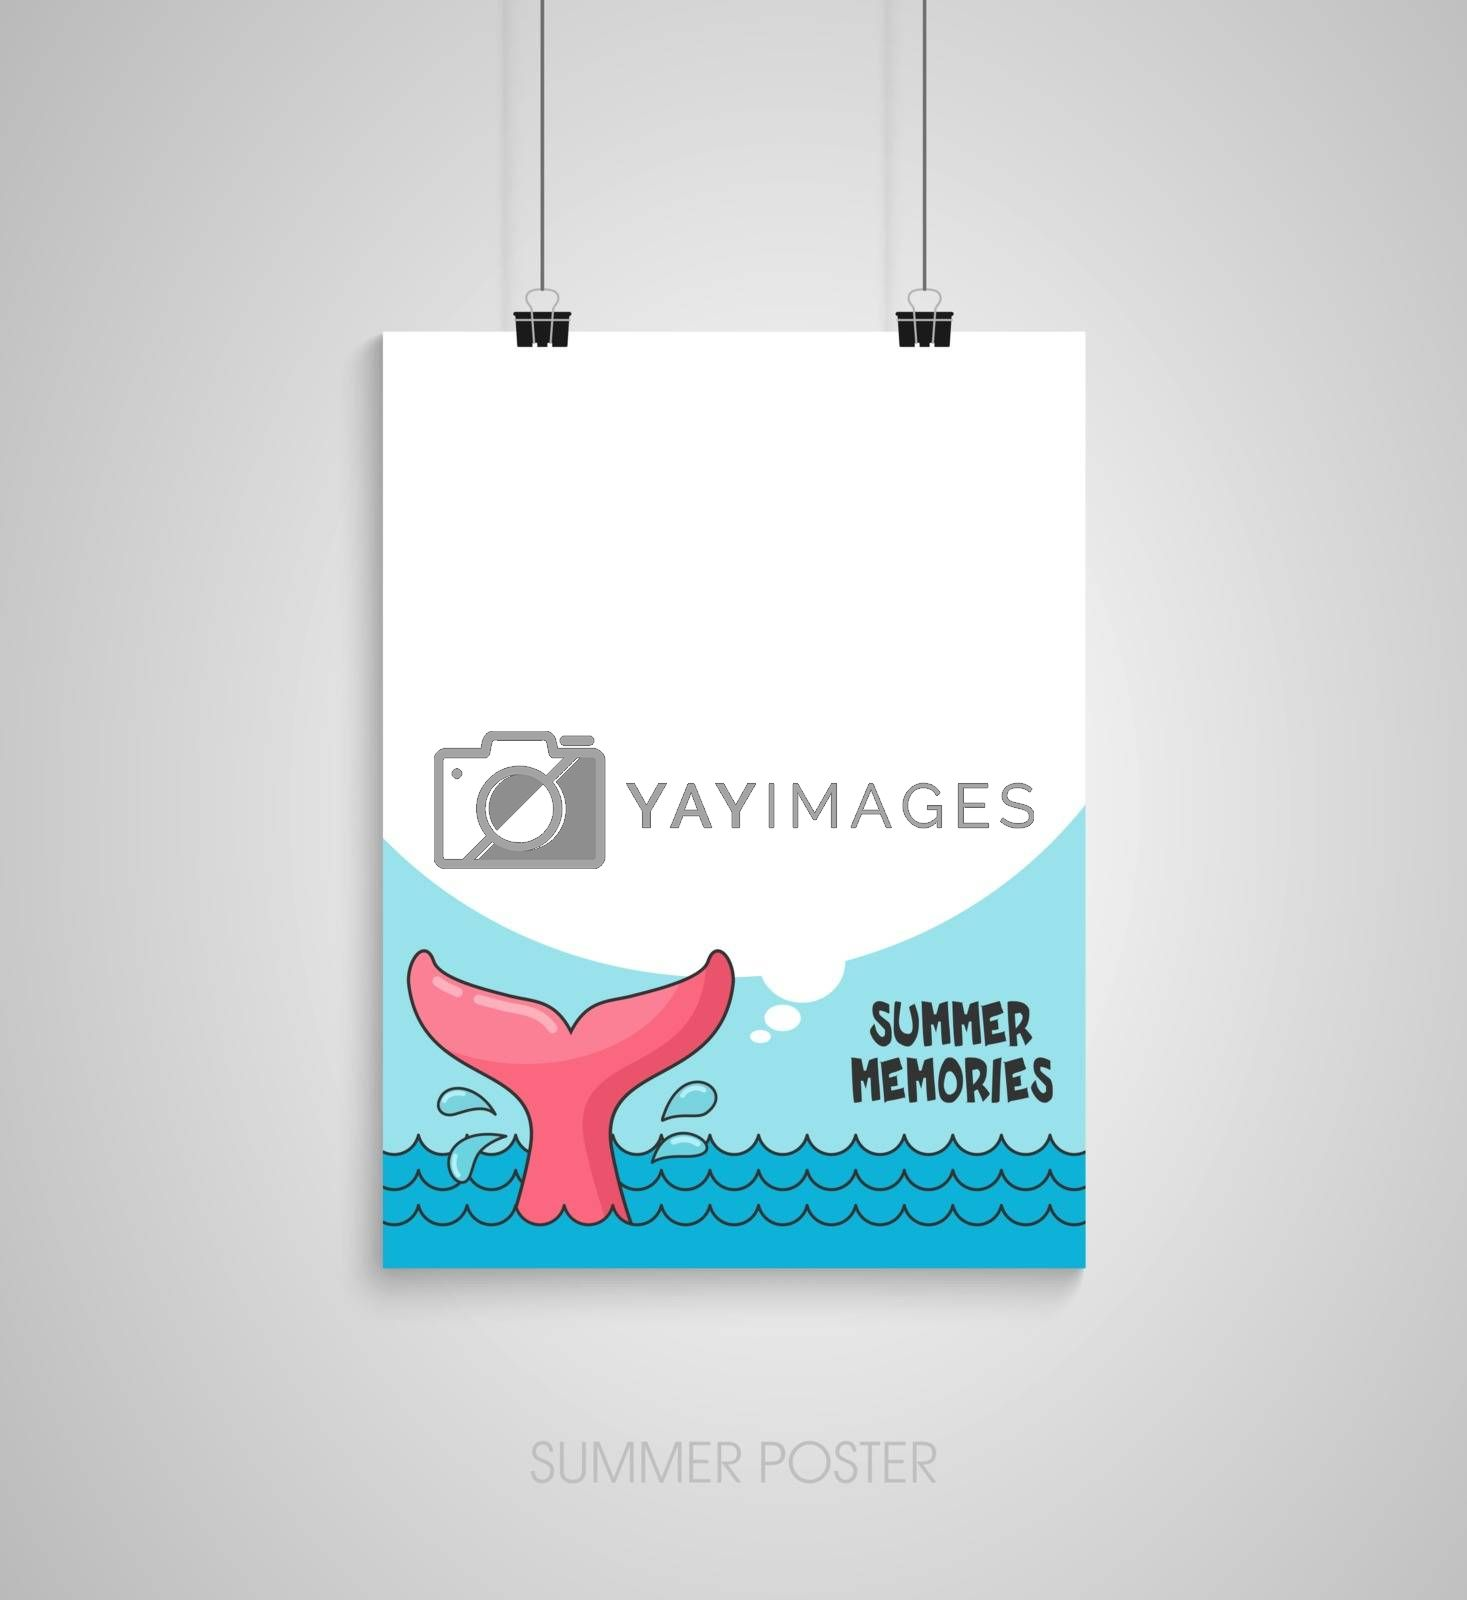 Summer flyer card with whale tail and text bubble. Summer memories. Journal cards. Vector illustrations for t-shirt, poster prints. Holiday, travel, vacation theme